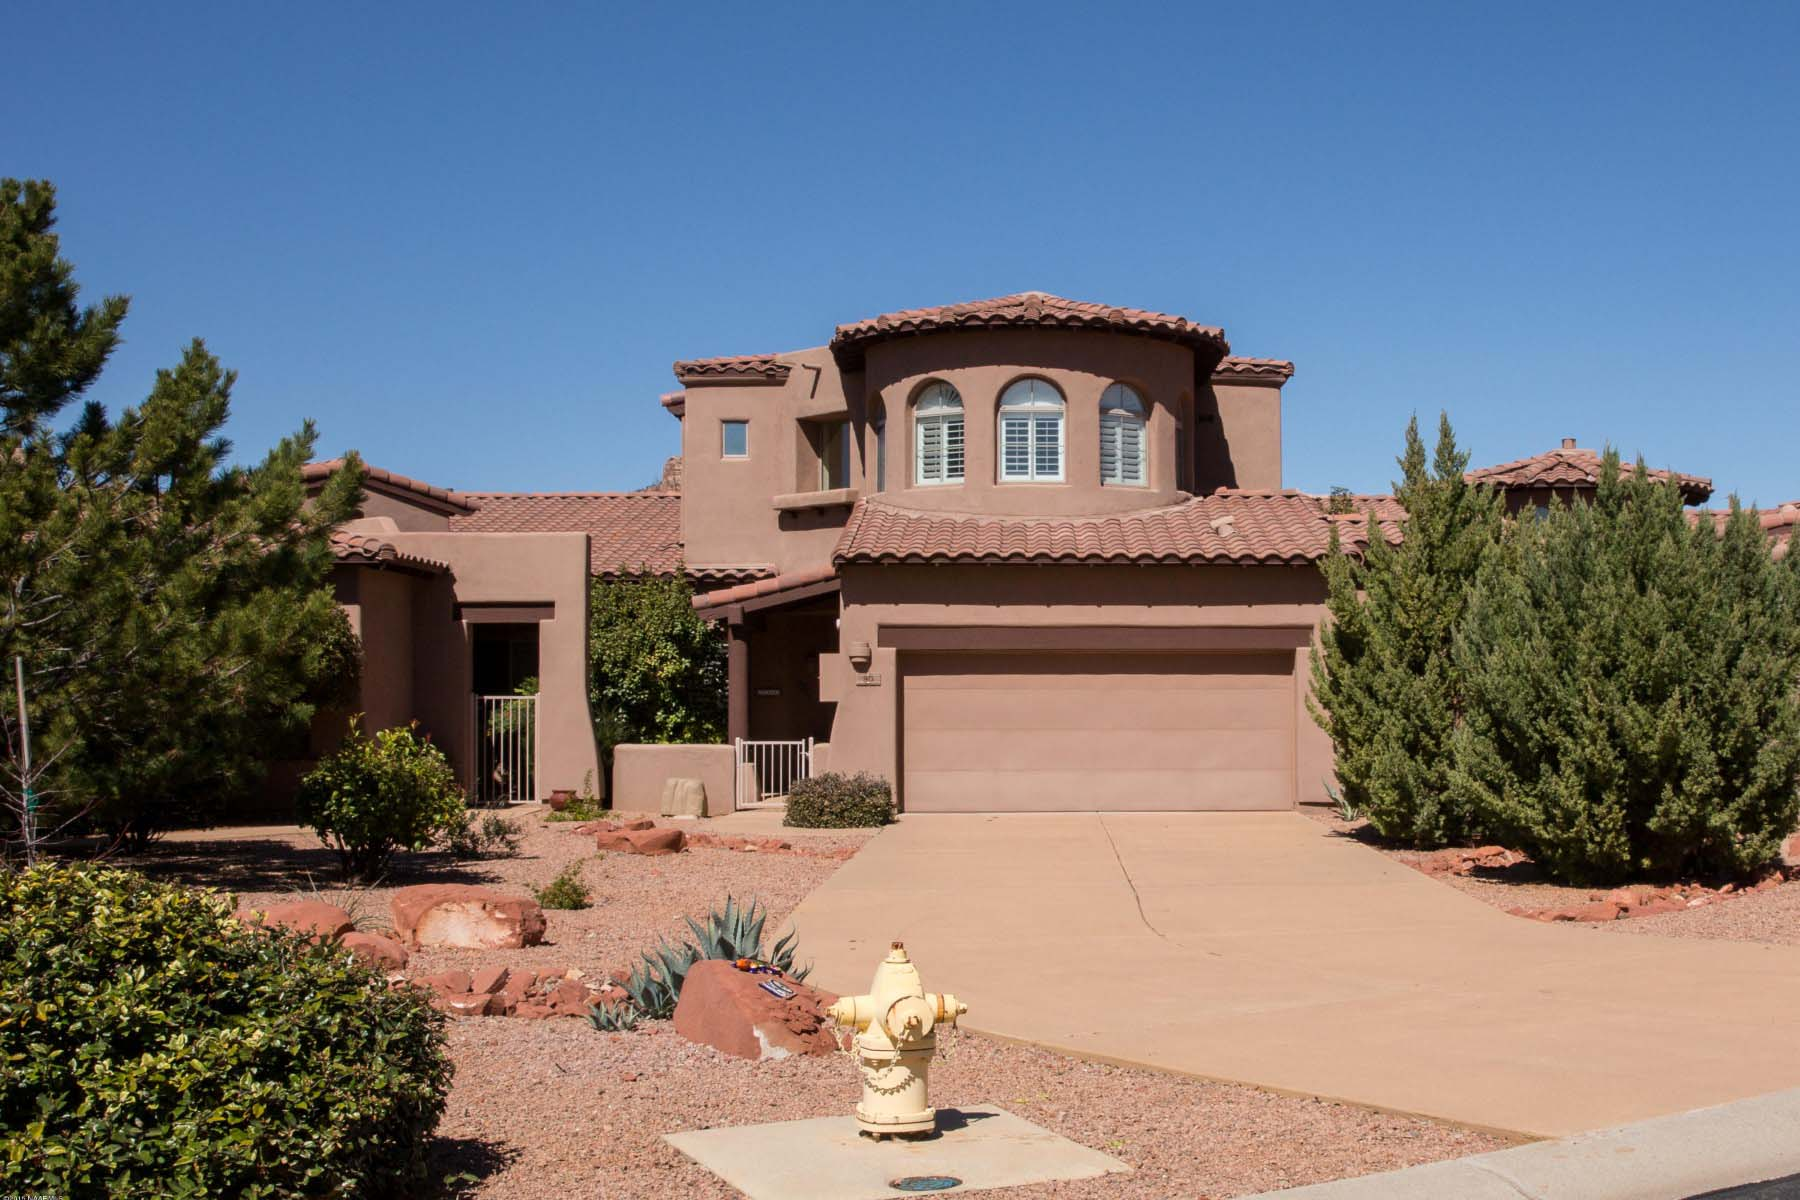 Townhouse for Sale at The perfect turn-key, care-free, elegant Sedona getaway. 80 Rio Sinagua Sedona, Arizona 86351 United States